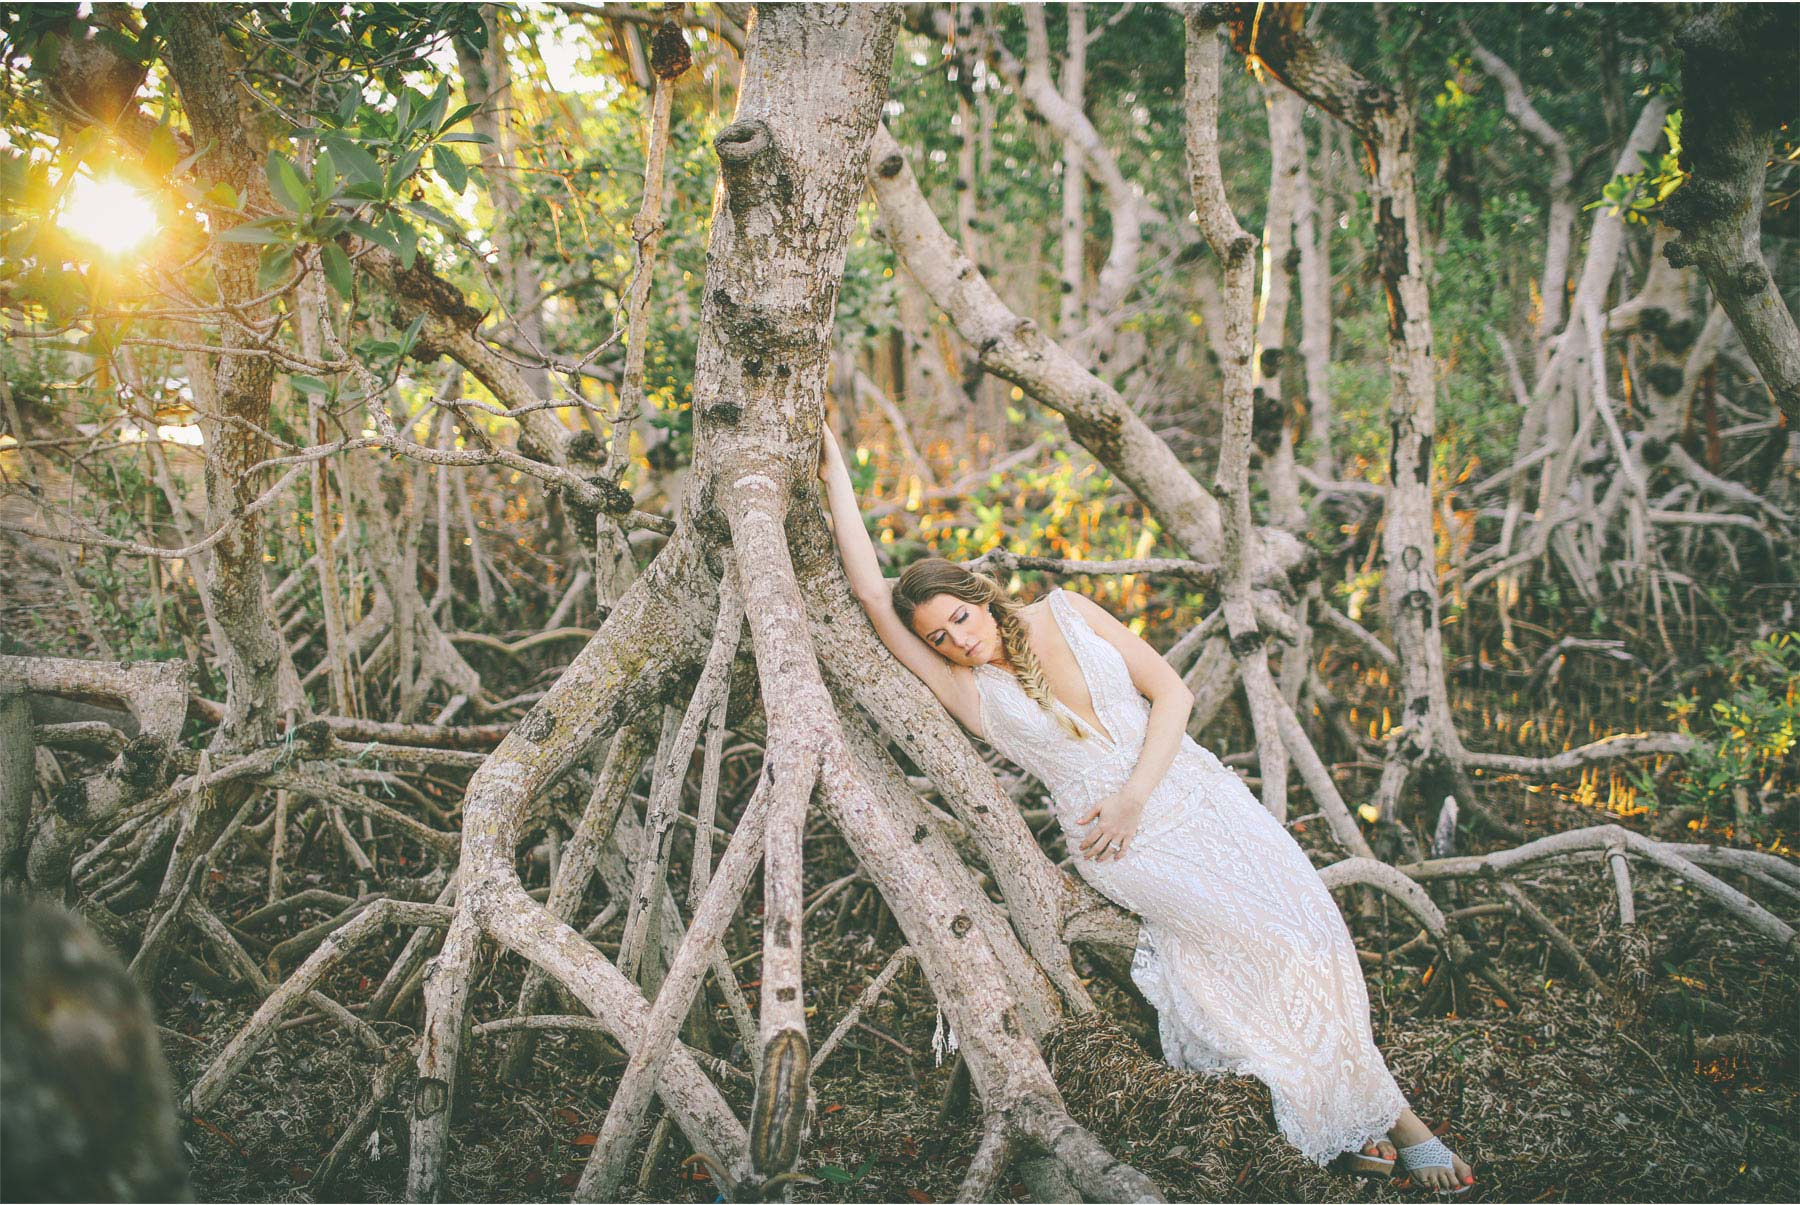 26-Key-Largo-Florida-Keys-Wedding-Photographer-by-Andrew-Vick-Photography-Playa-Largo-Resort-and-Spa-Hotel-Destination-Winter-Wear-It-Again-Bride-Trees-Vintage-Carrie-and-Brian.jpg